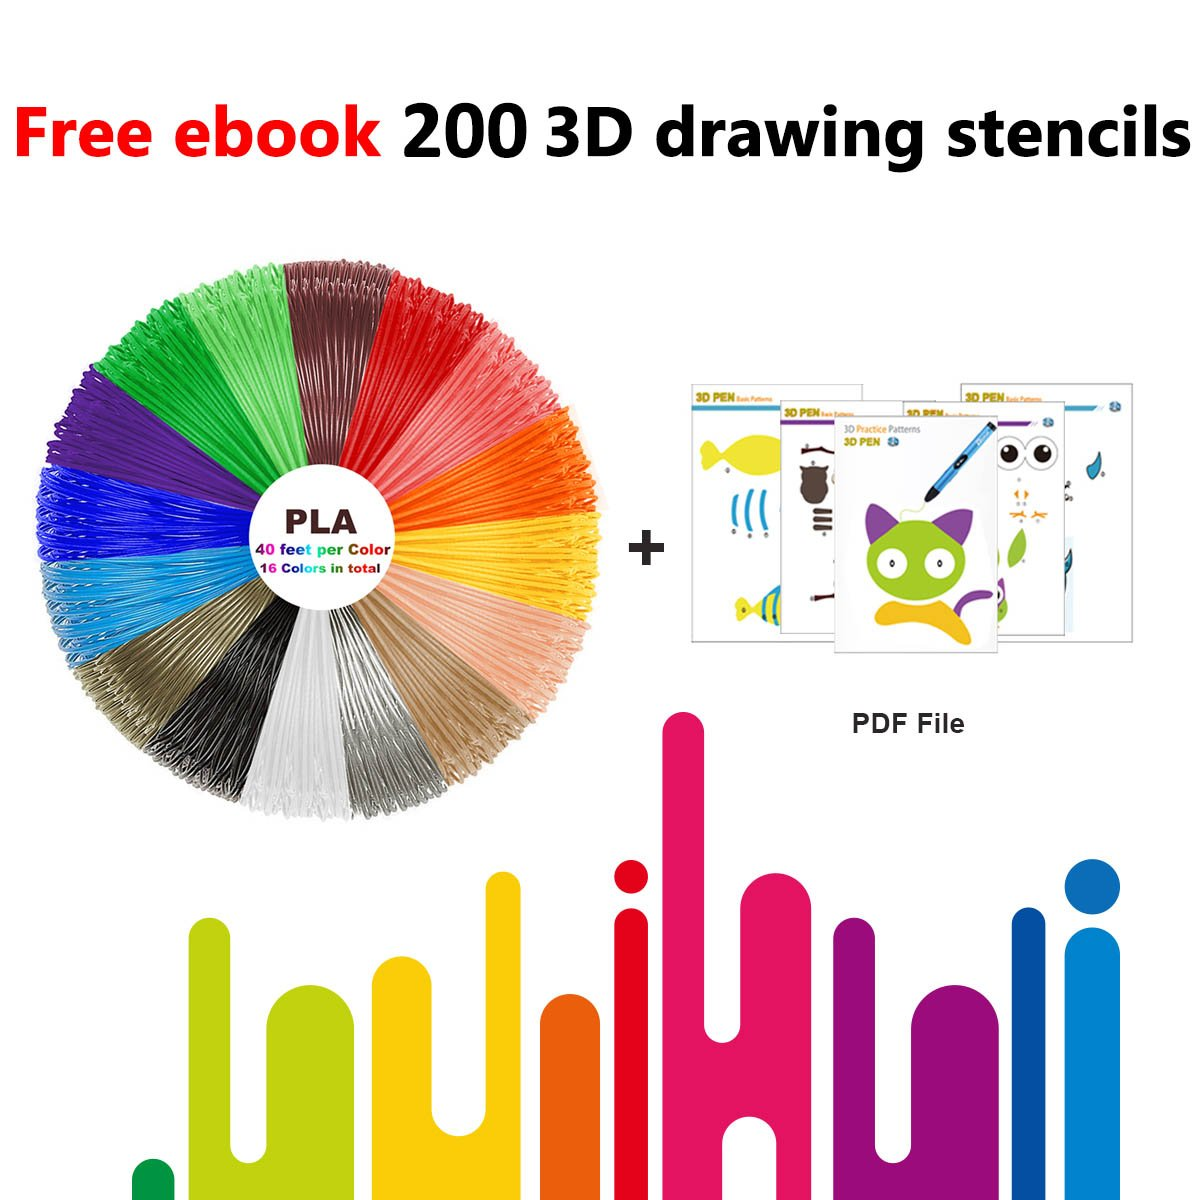 3D Pen Filament Refills PLA 16 Colors 40 Feet 1.75mm with 200 Stencils eBook Total 640 Feet 3D Art Pen Filament for TIPEYE, Canbor, MYNT3D, DigiHero, Zerofire, Dikale, BeTIM 3D Printing Pen and etc by TIPEYE (Image #3)